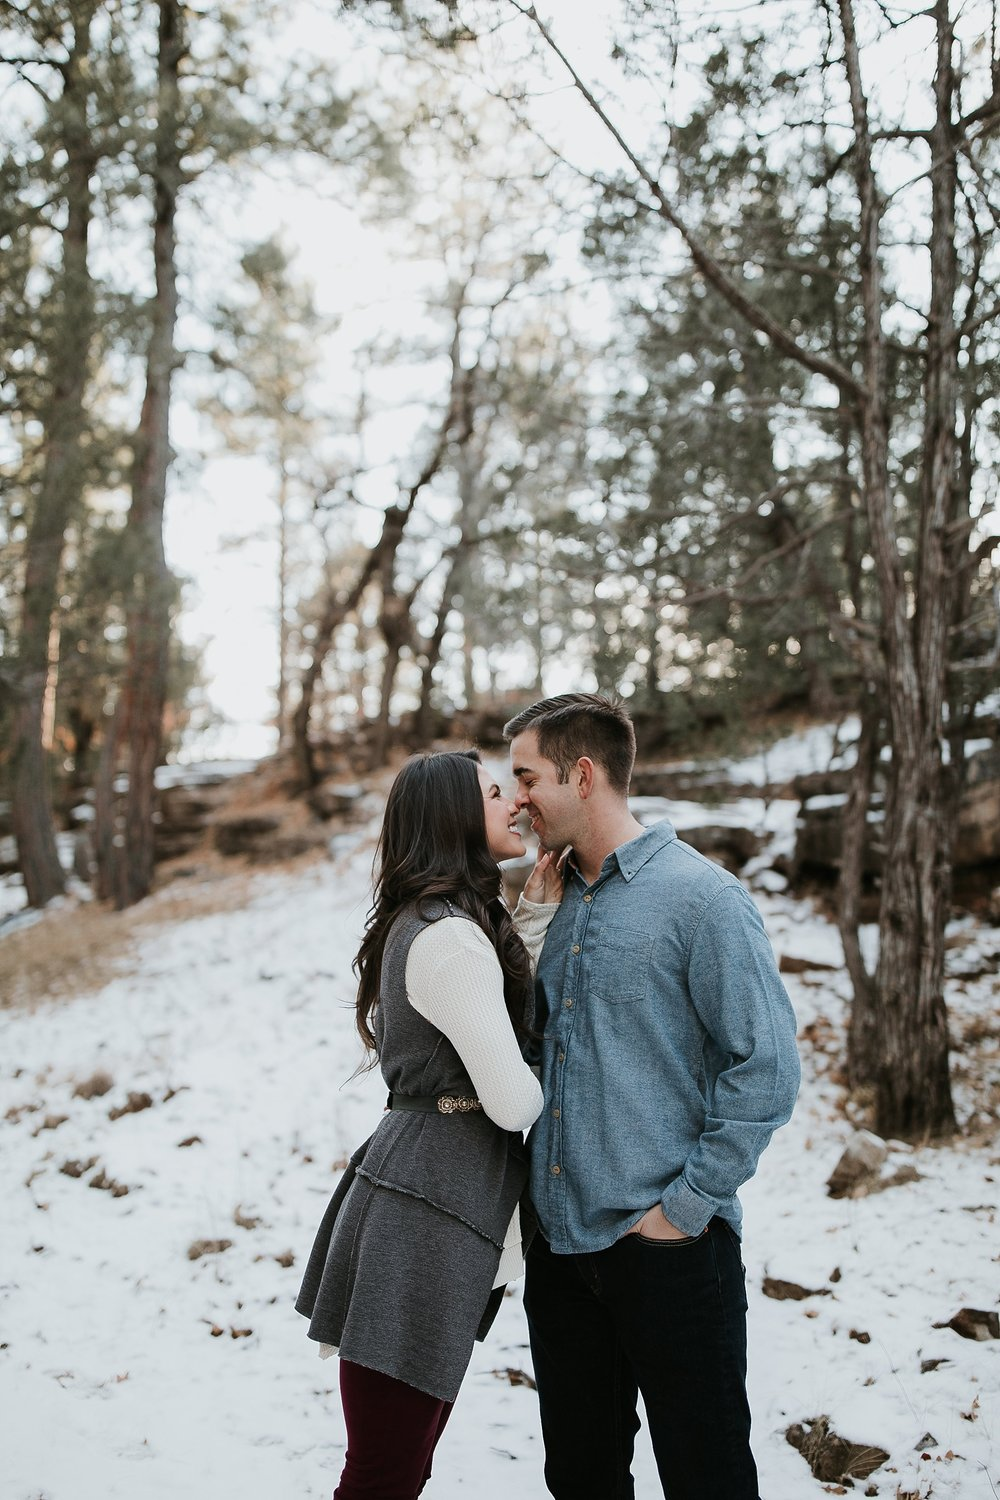 Alicia+lucia+photography+-+albuquerque+wedding+photographer+-+santa+fe+wedding+photography+-+new+mexico+wedding+photographer+-+new+mexico+engagement+-+winter+engagement+session_0028.jpg